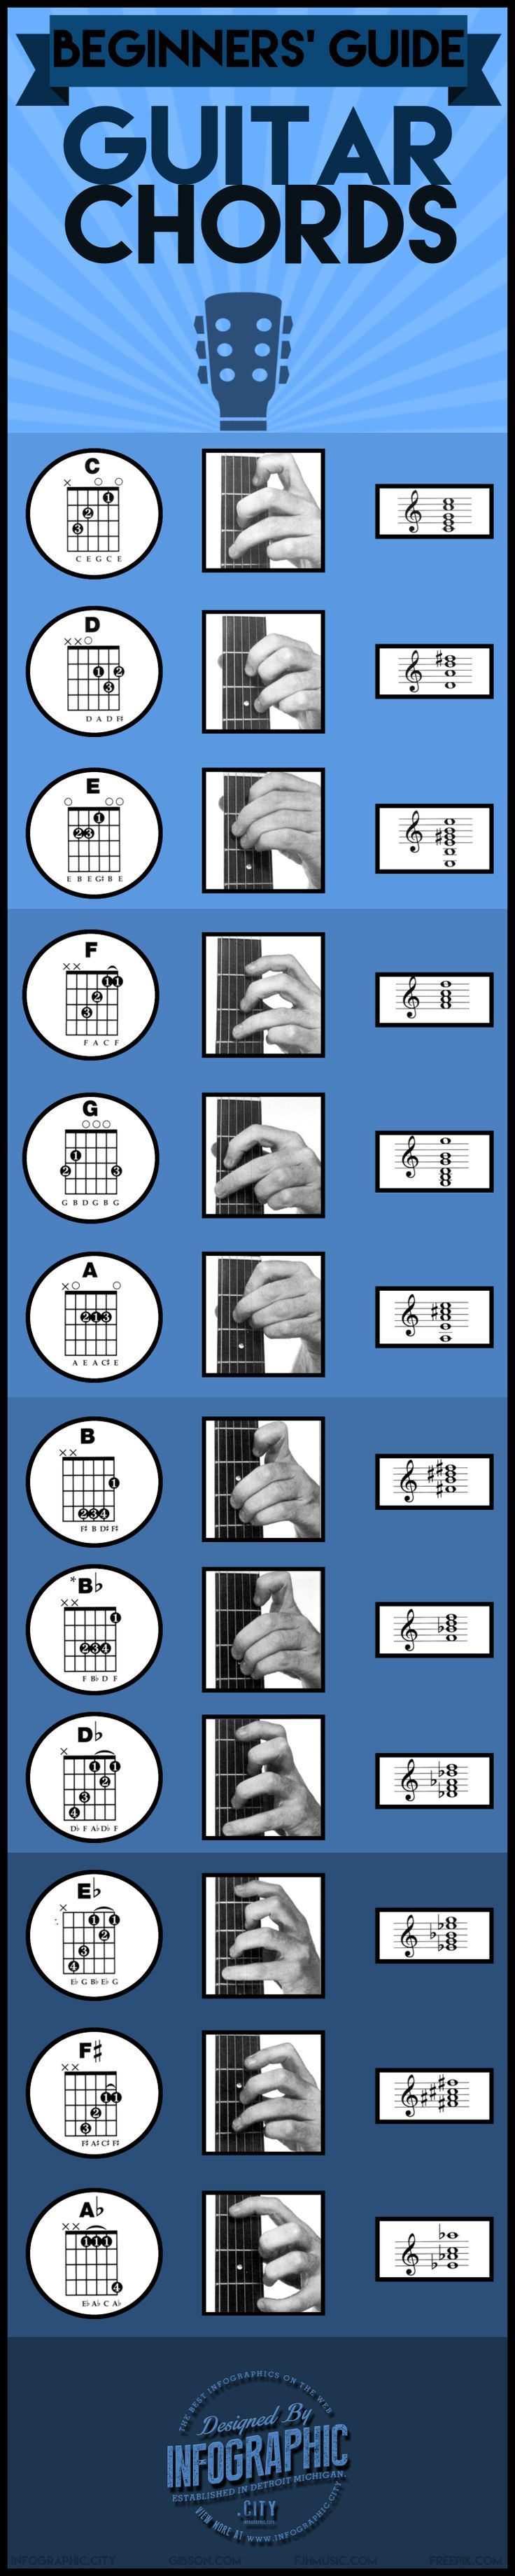 A Beginners Guide To Guitar Chords Infographic